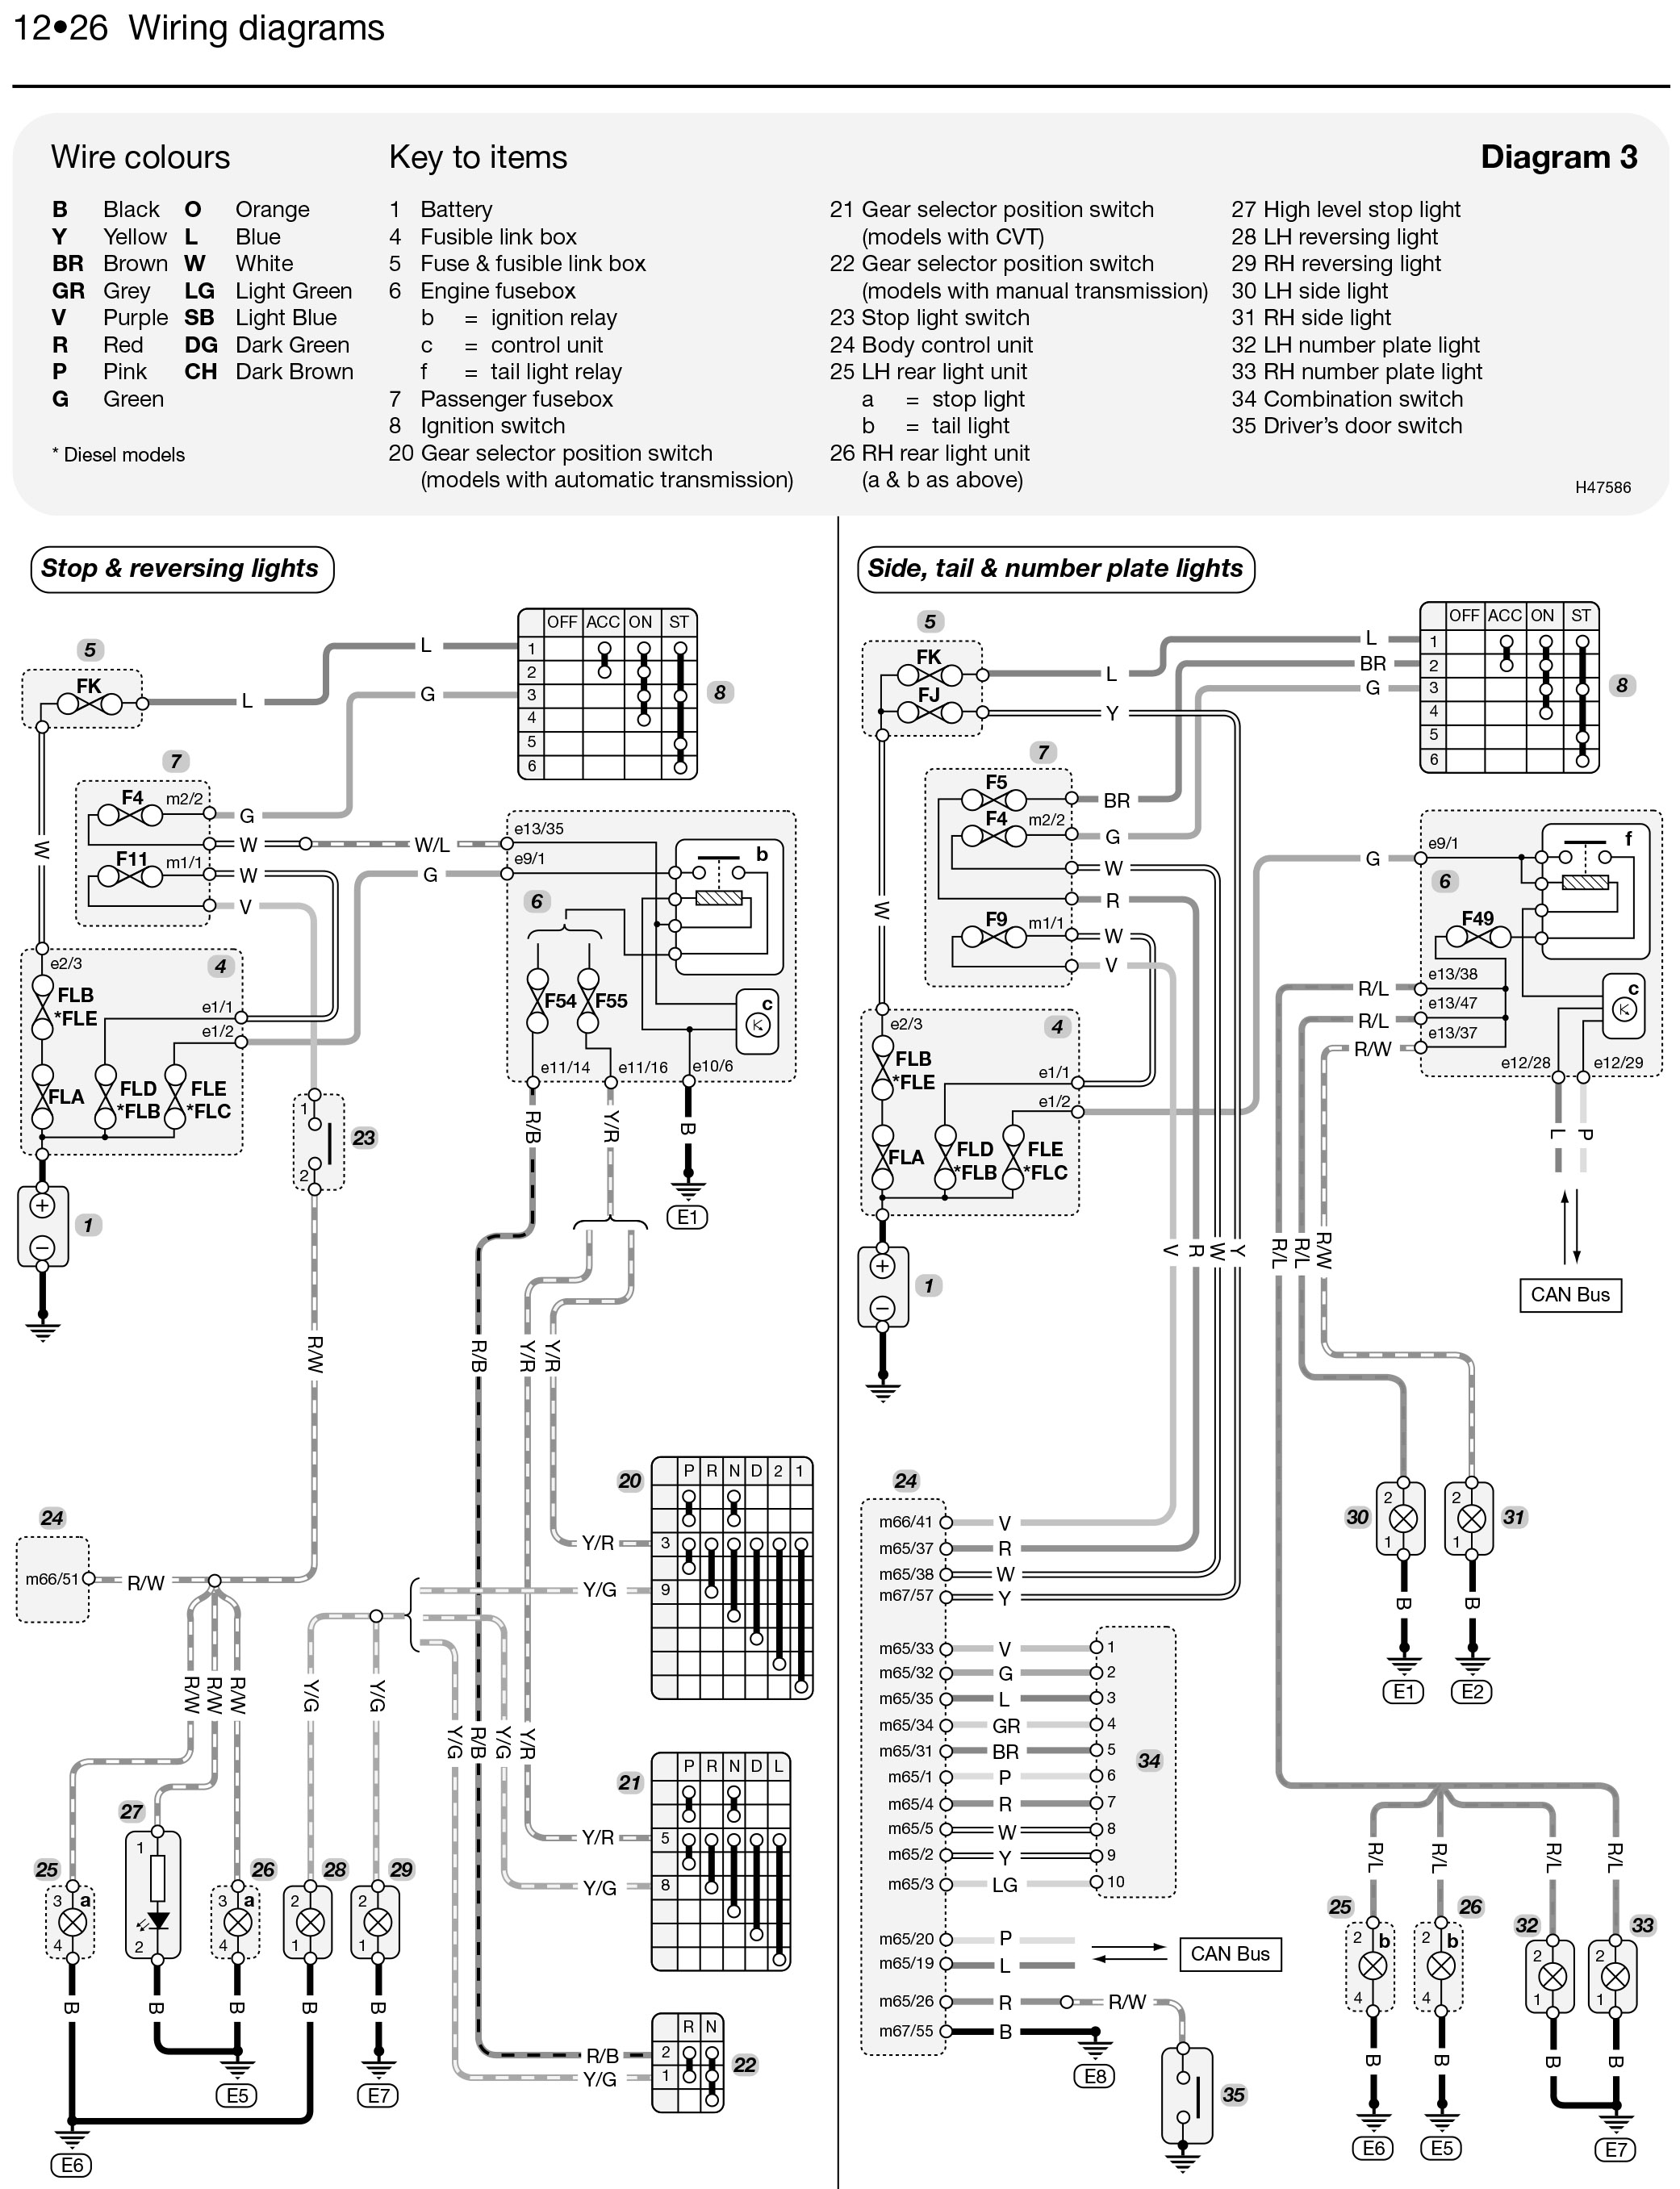 Nissan Versa S also 2005 Hyundai Santa Fe Hose Diagram moreover Fotos De Autos Autocosmos likewise 2005 Nissan Altima Stereo Wiring Diagram Unique 2006 Nissan Altima Wiring Diagram Elegant 2006 Nissan Altima also 2006 Nissan Sentra Air Conditioning Diagram. on 2003 nissan xterra review